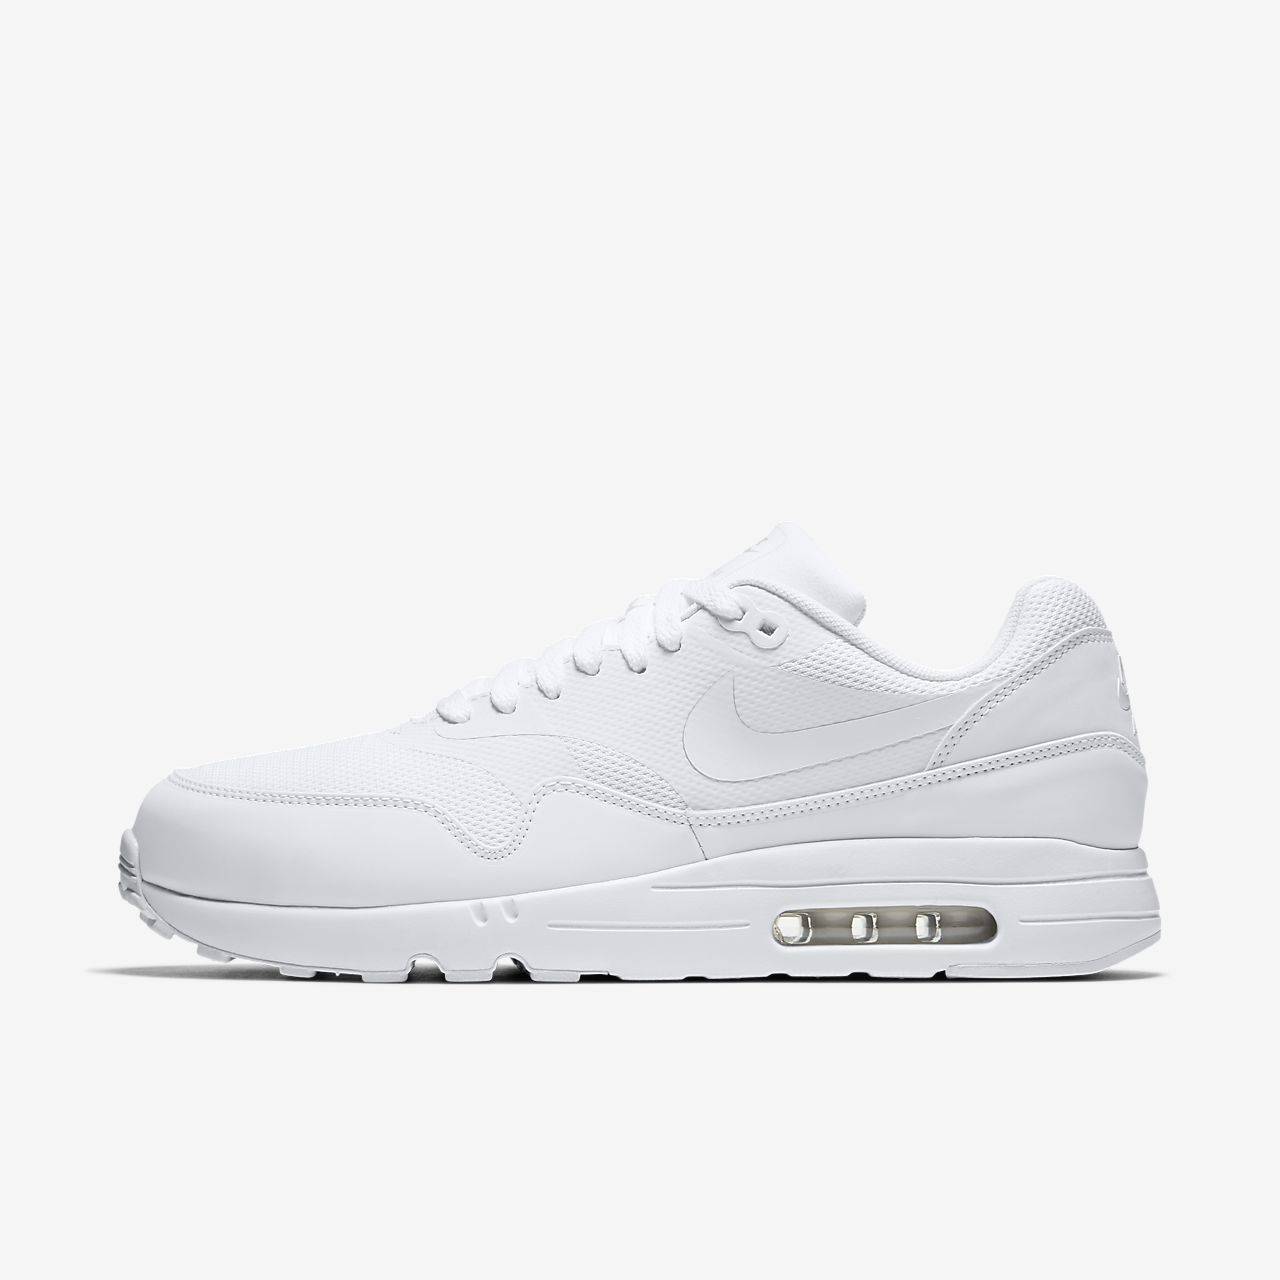 nike air max 1 ultra 2.0 essential shoes for summer